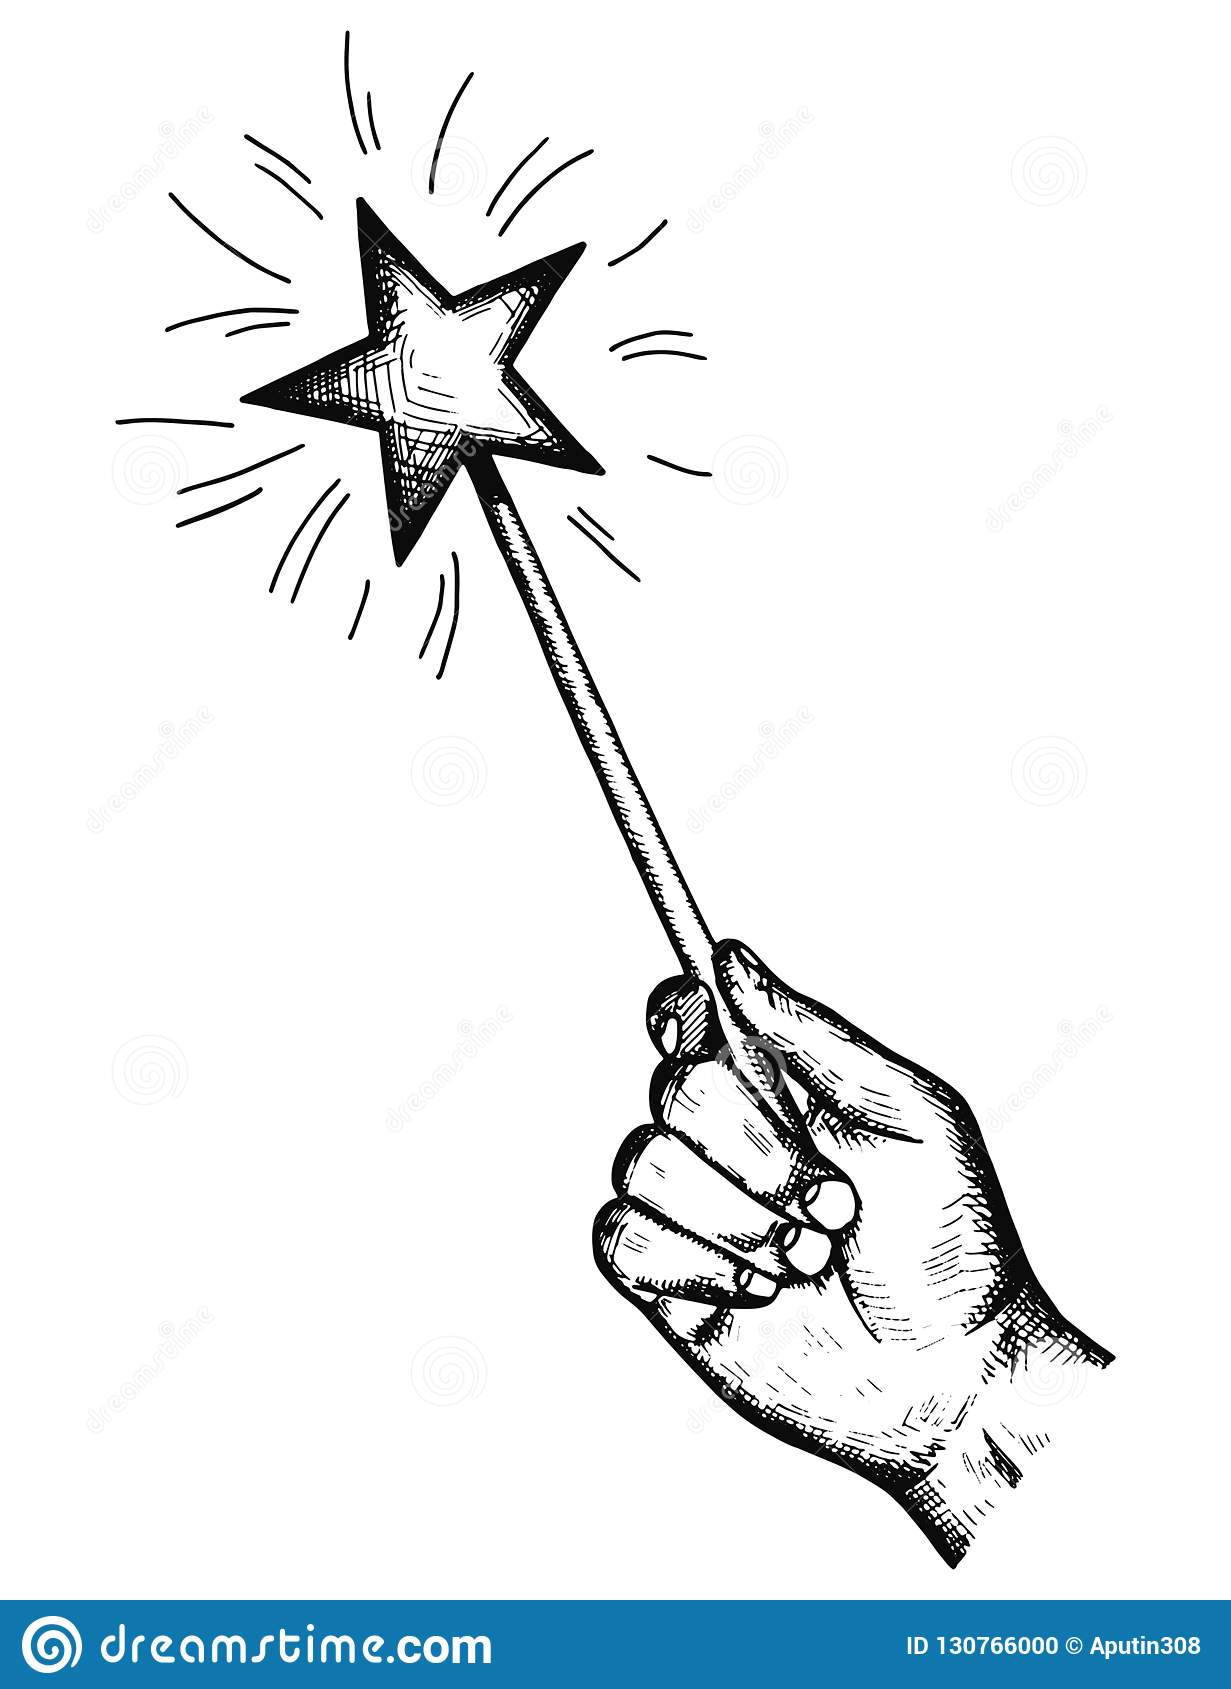 The Magic Wand In His Hand Holds The Wishes Of The Sketch